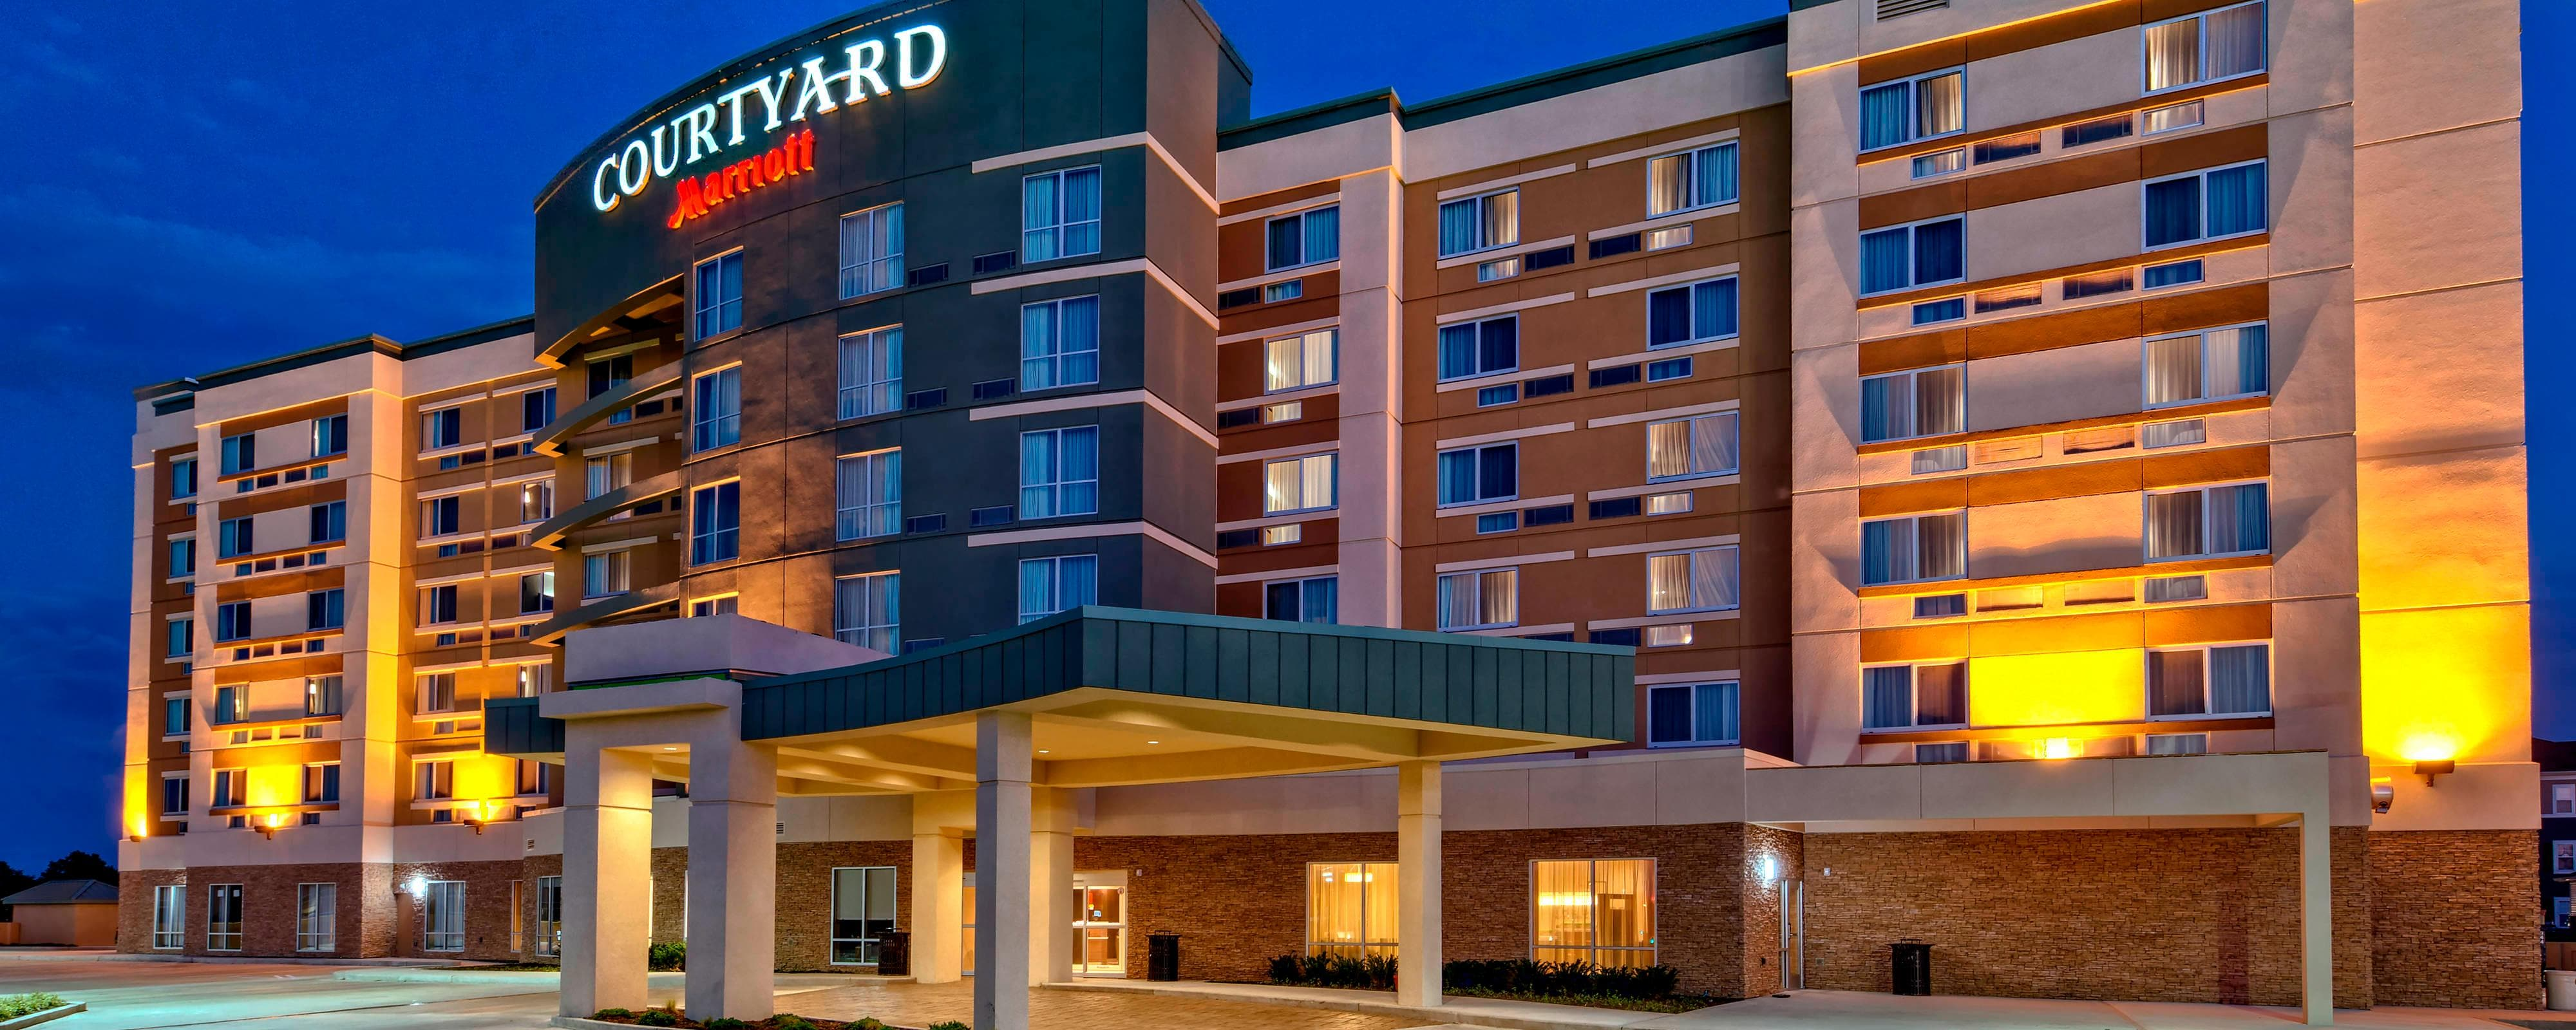 Courtyard By Marriott Long Island City New York Manhattan: Long Island Hotels In Westbury, NY